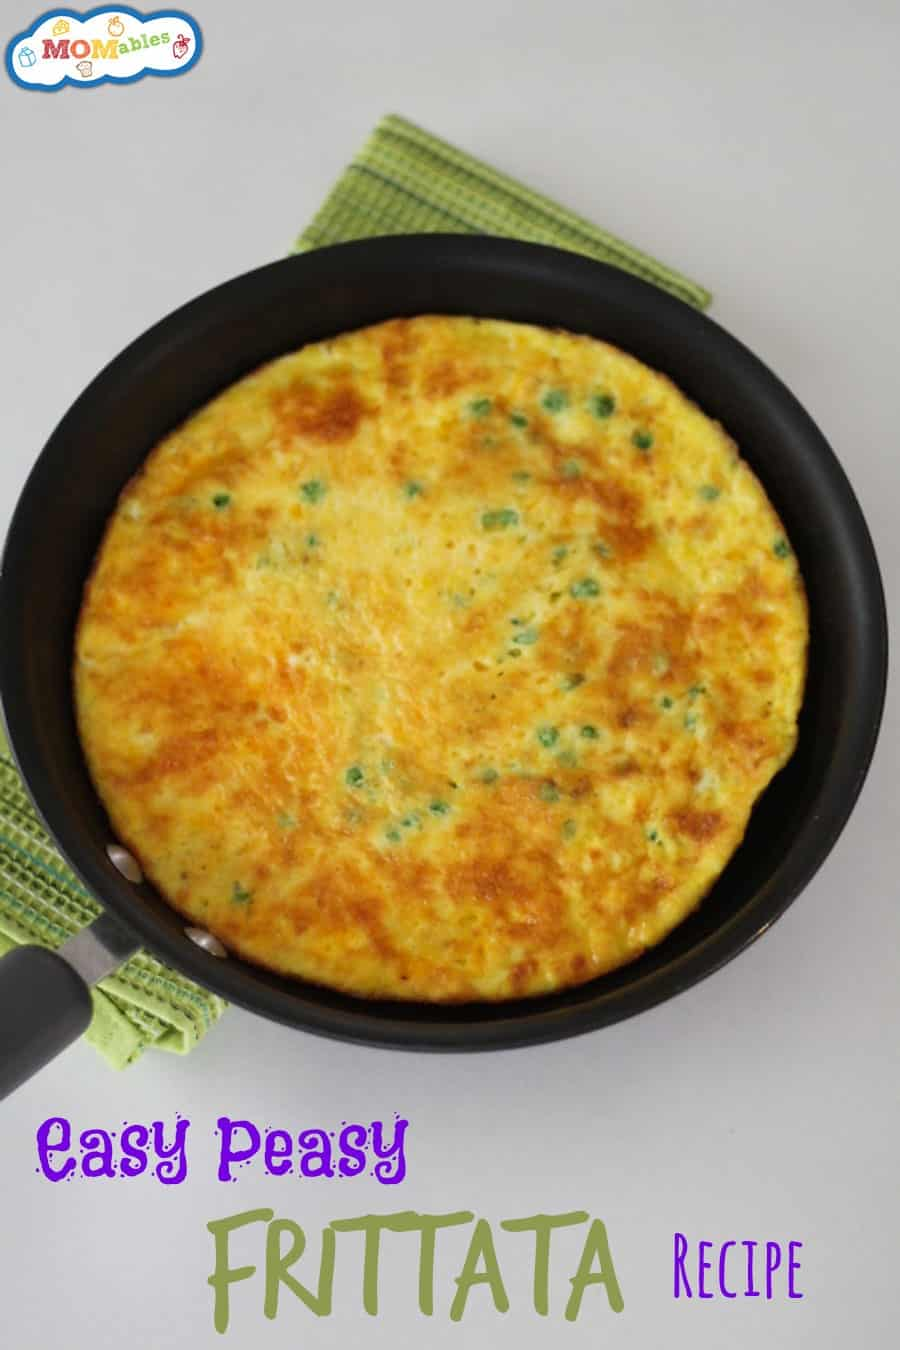 Easy Peasy And Fun: Easy Peasy Frittata Recipe